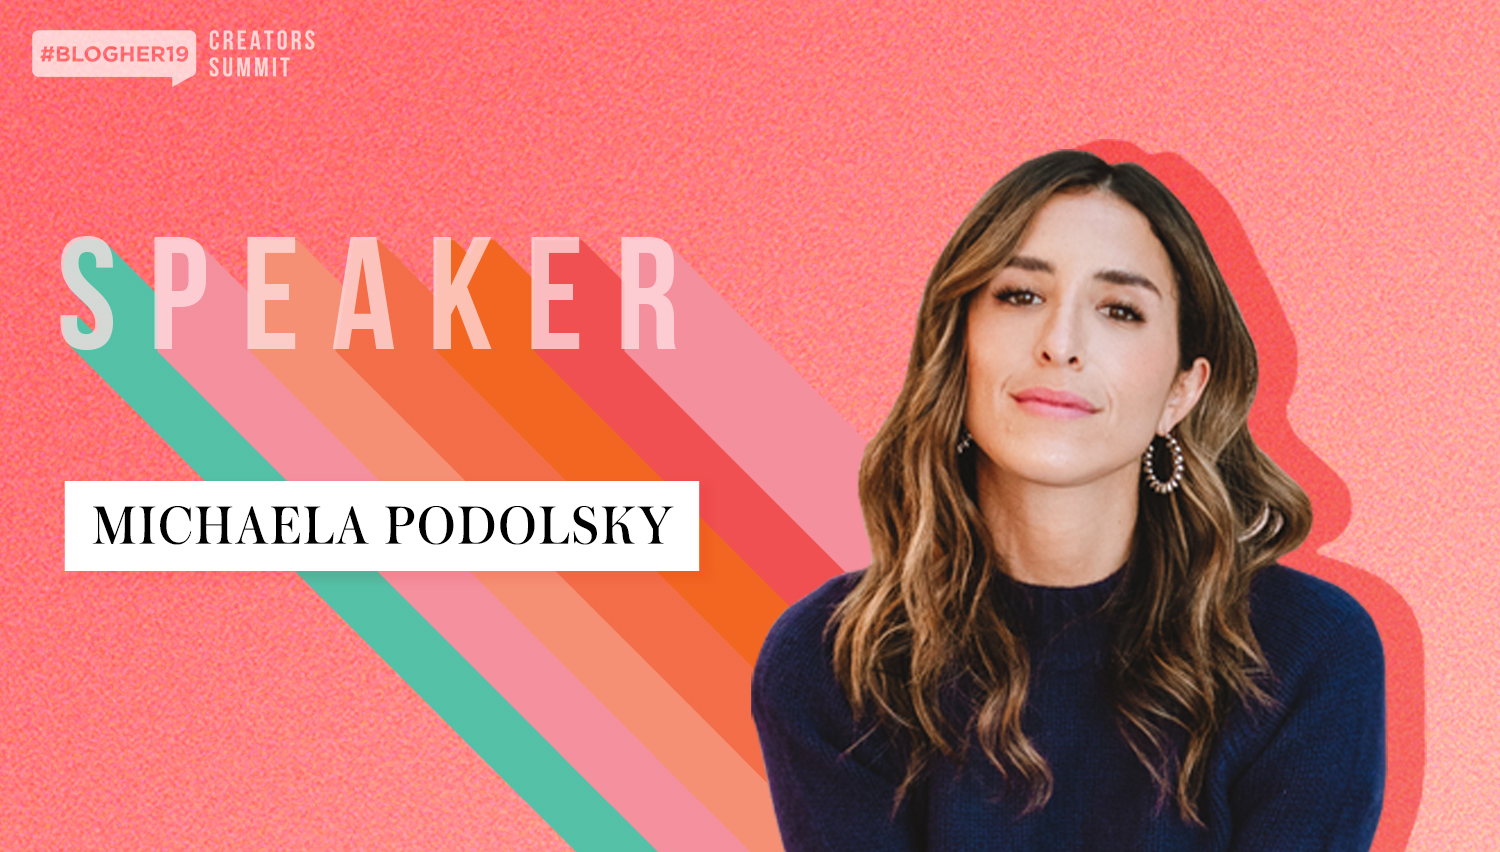 Meet Michaela podolsky! - This beauty fanatic is joining the #BlogHer19 Creators Summit lineup to share her best advice for building a successful digital brand and business.